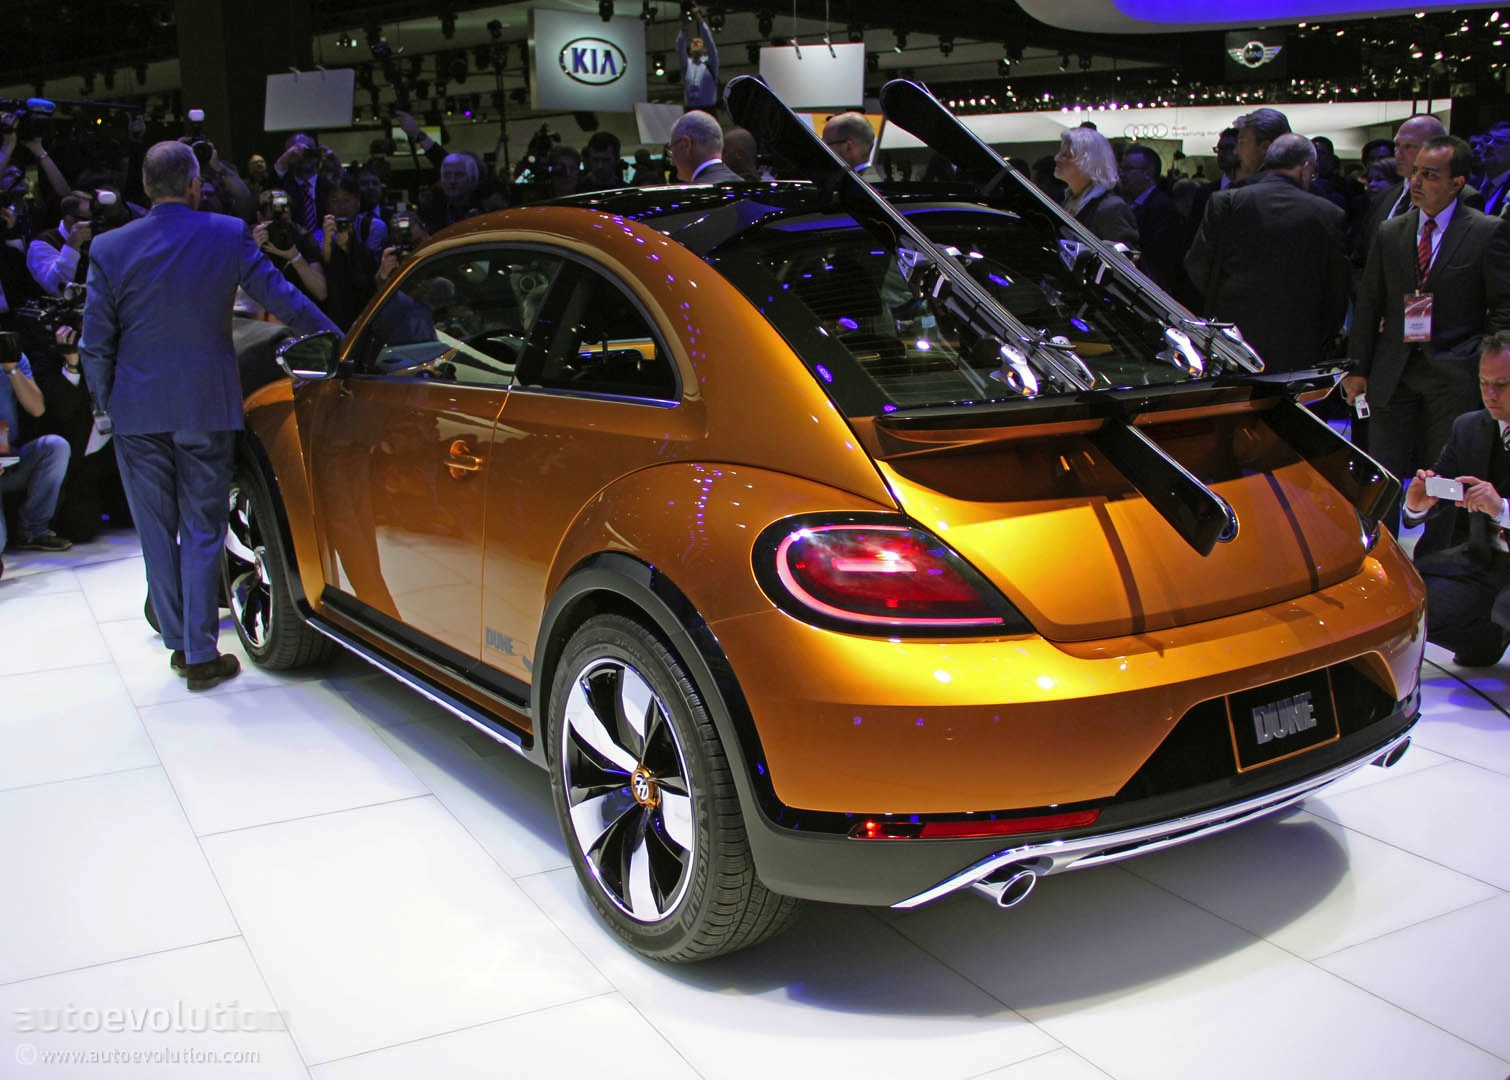 Vw Beetle Dune Concept Is An Alltrack Bug Live Photos on Vw Beetle Dune Concept